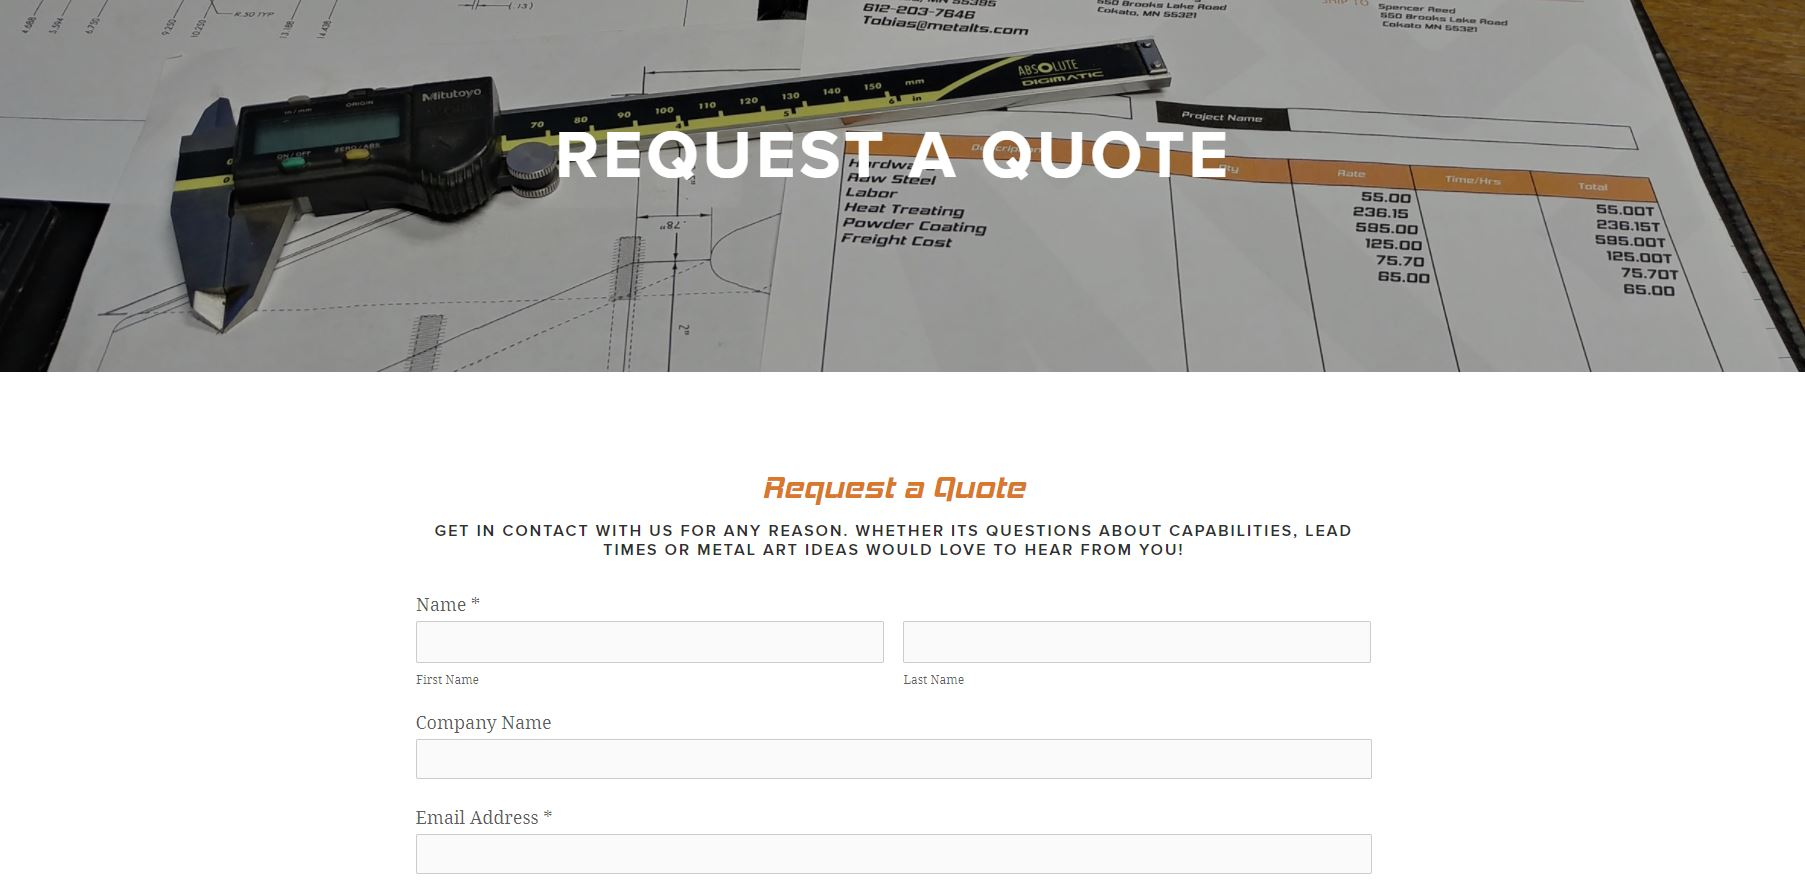 request a quote screenshot.JPG